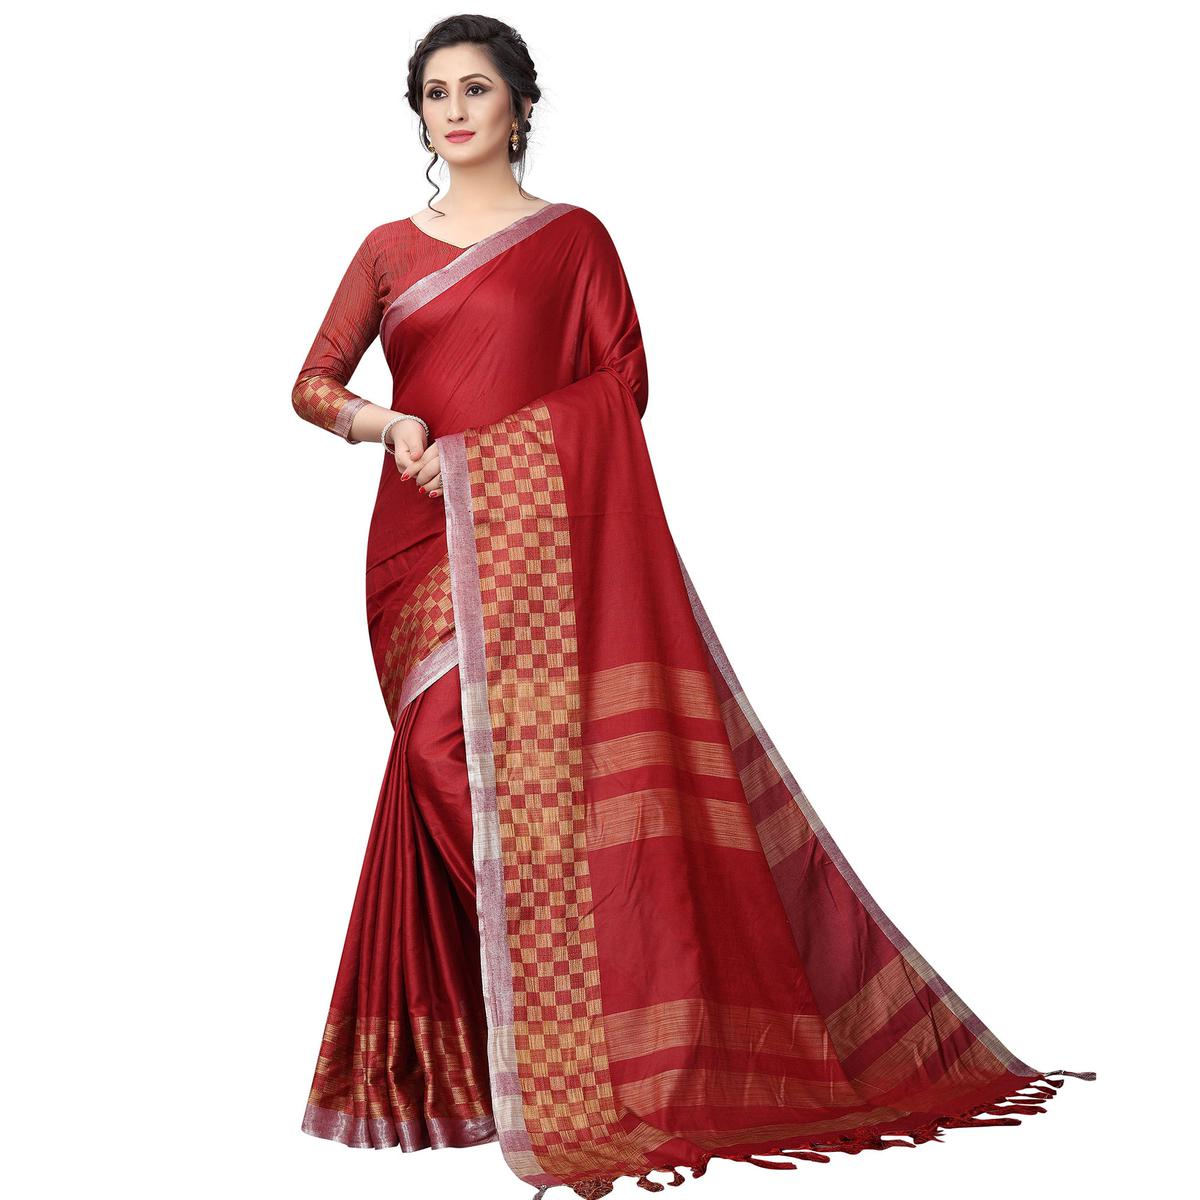 Classy Red Colored Casual Wear Cotton Linen Saree